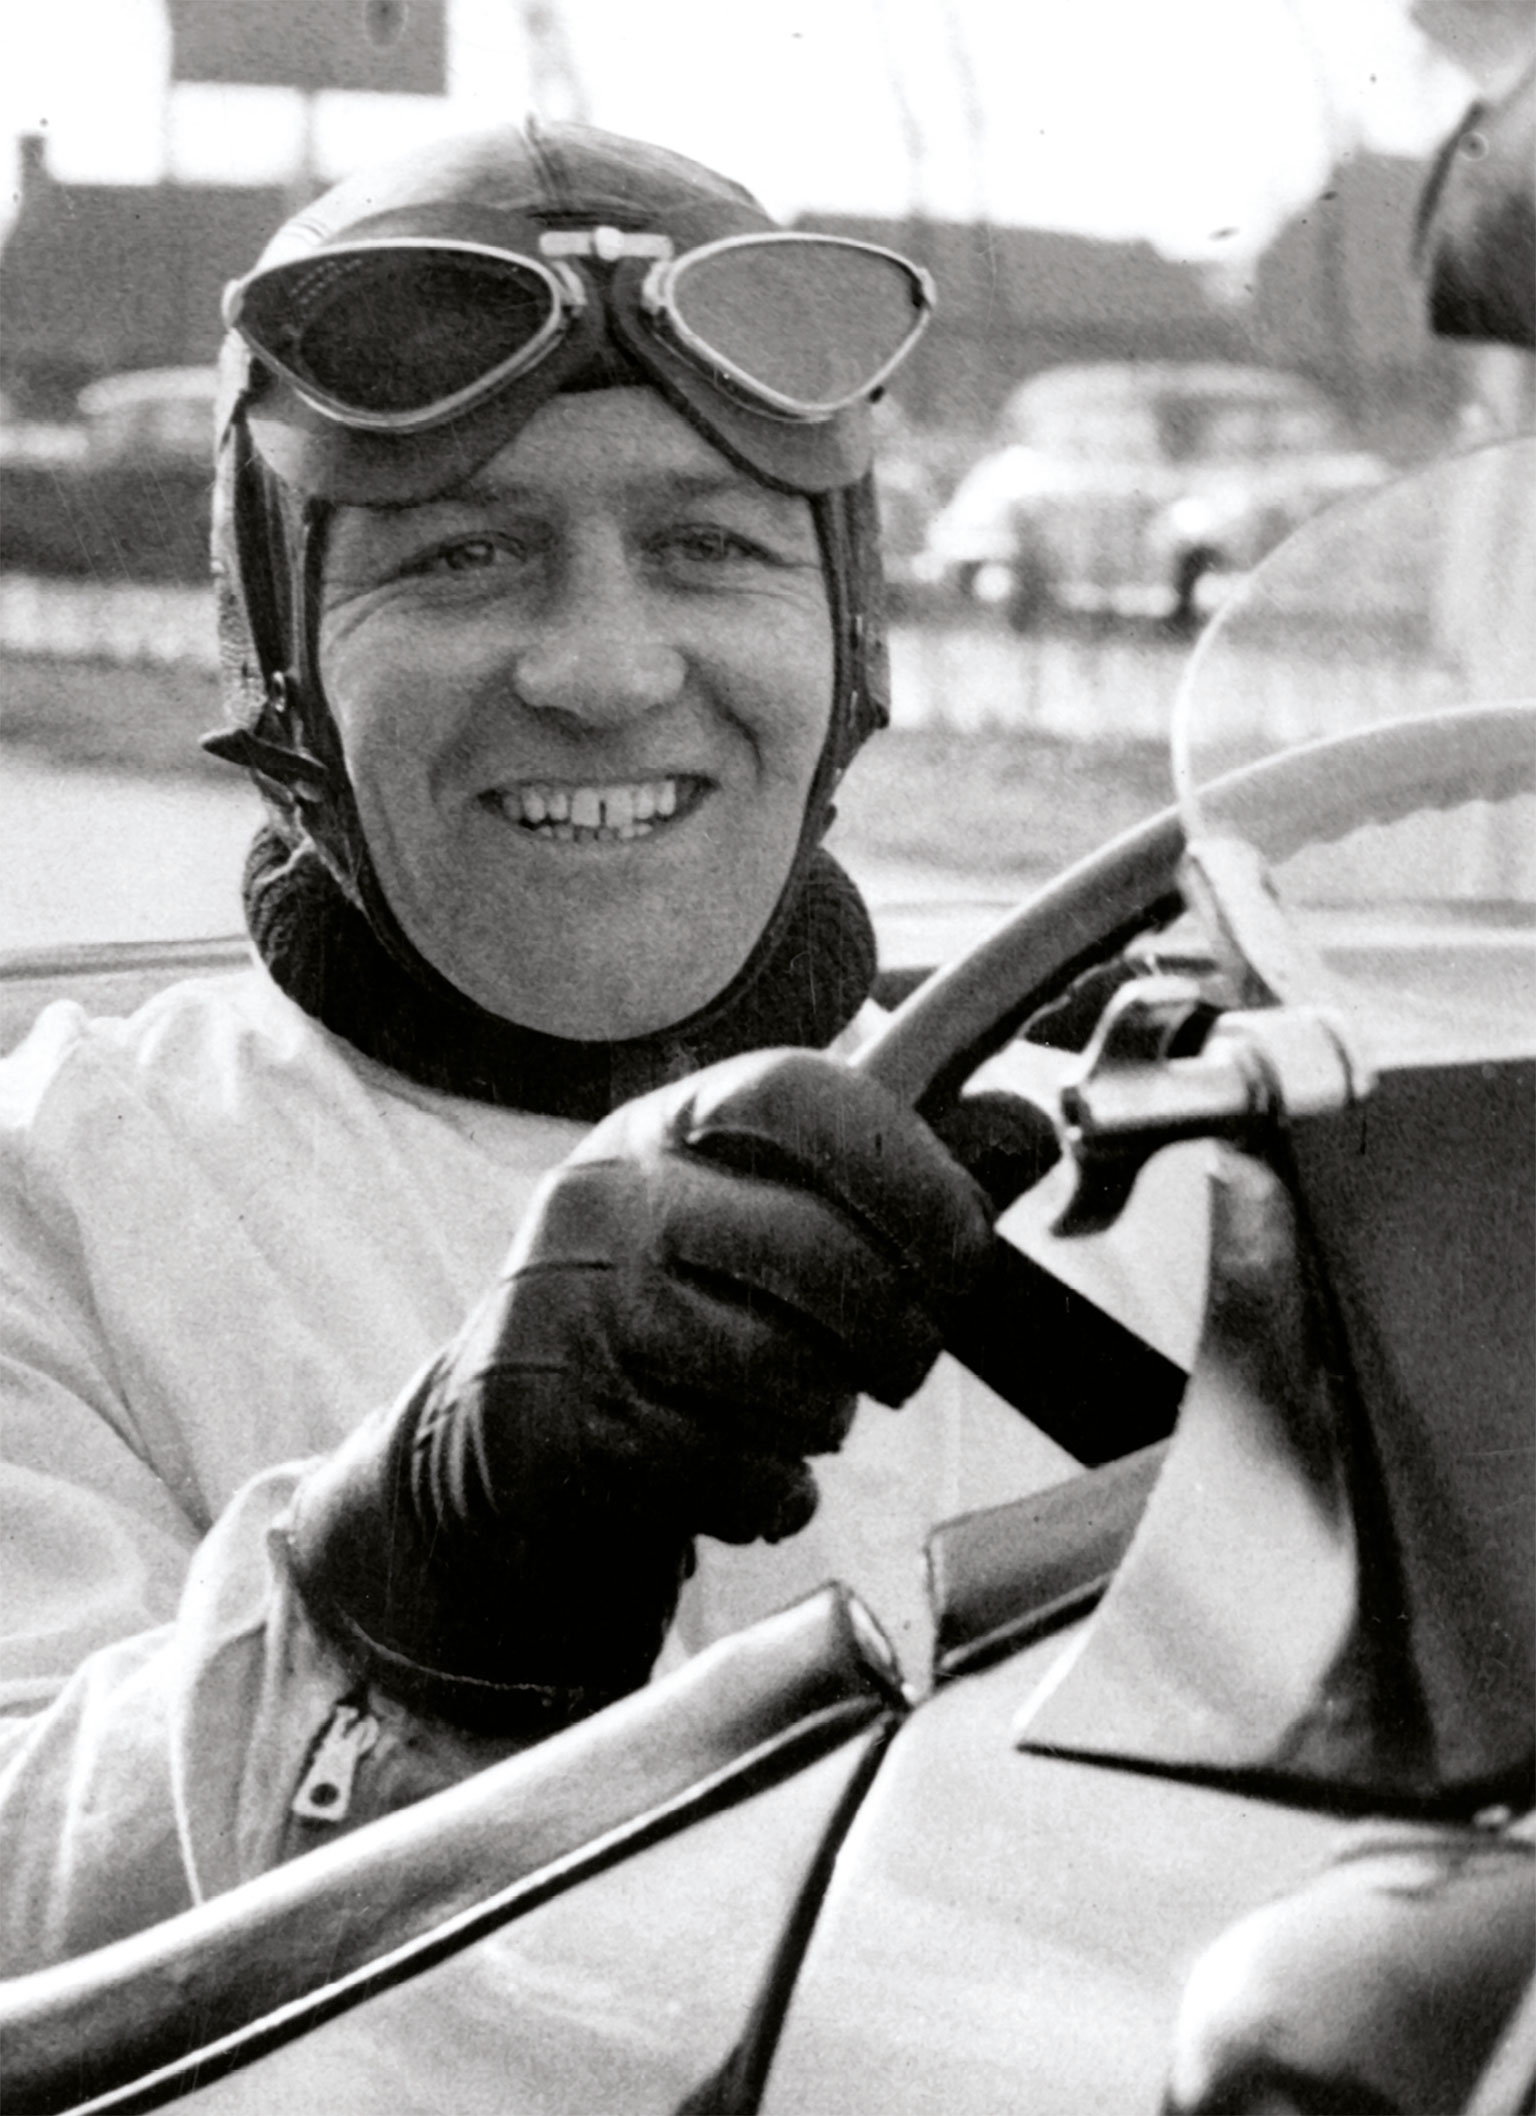 Dewis at the wheel of an XK120 in 1952 in Jabbeke, Belgium, a year before he broke the speed record for a production car there